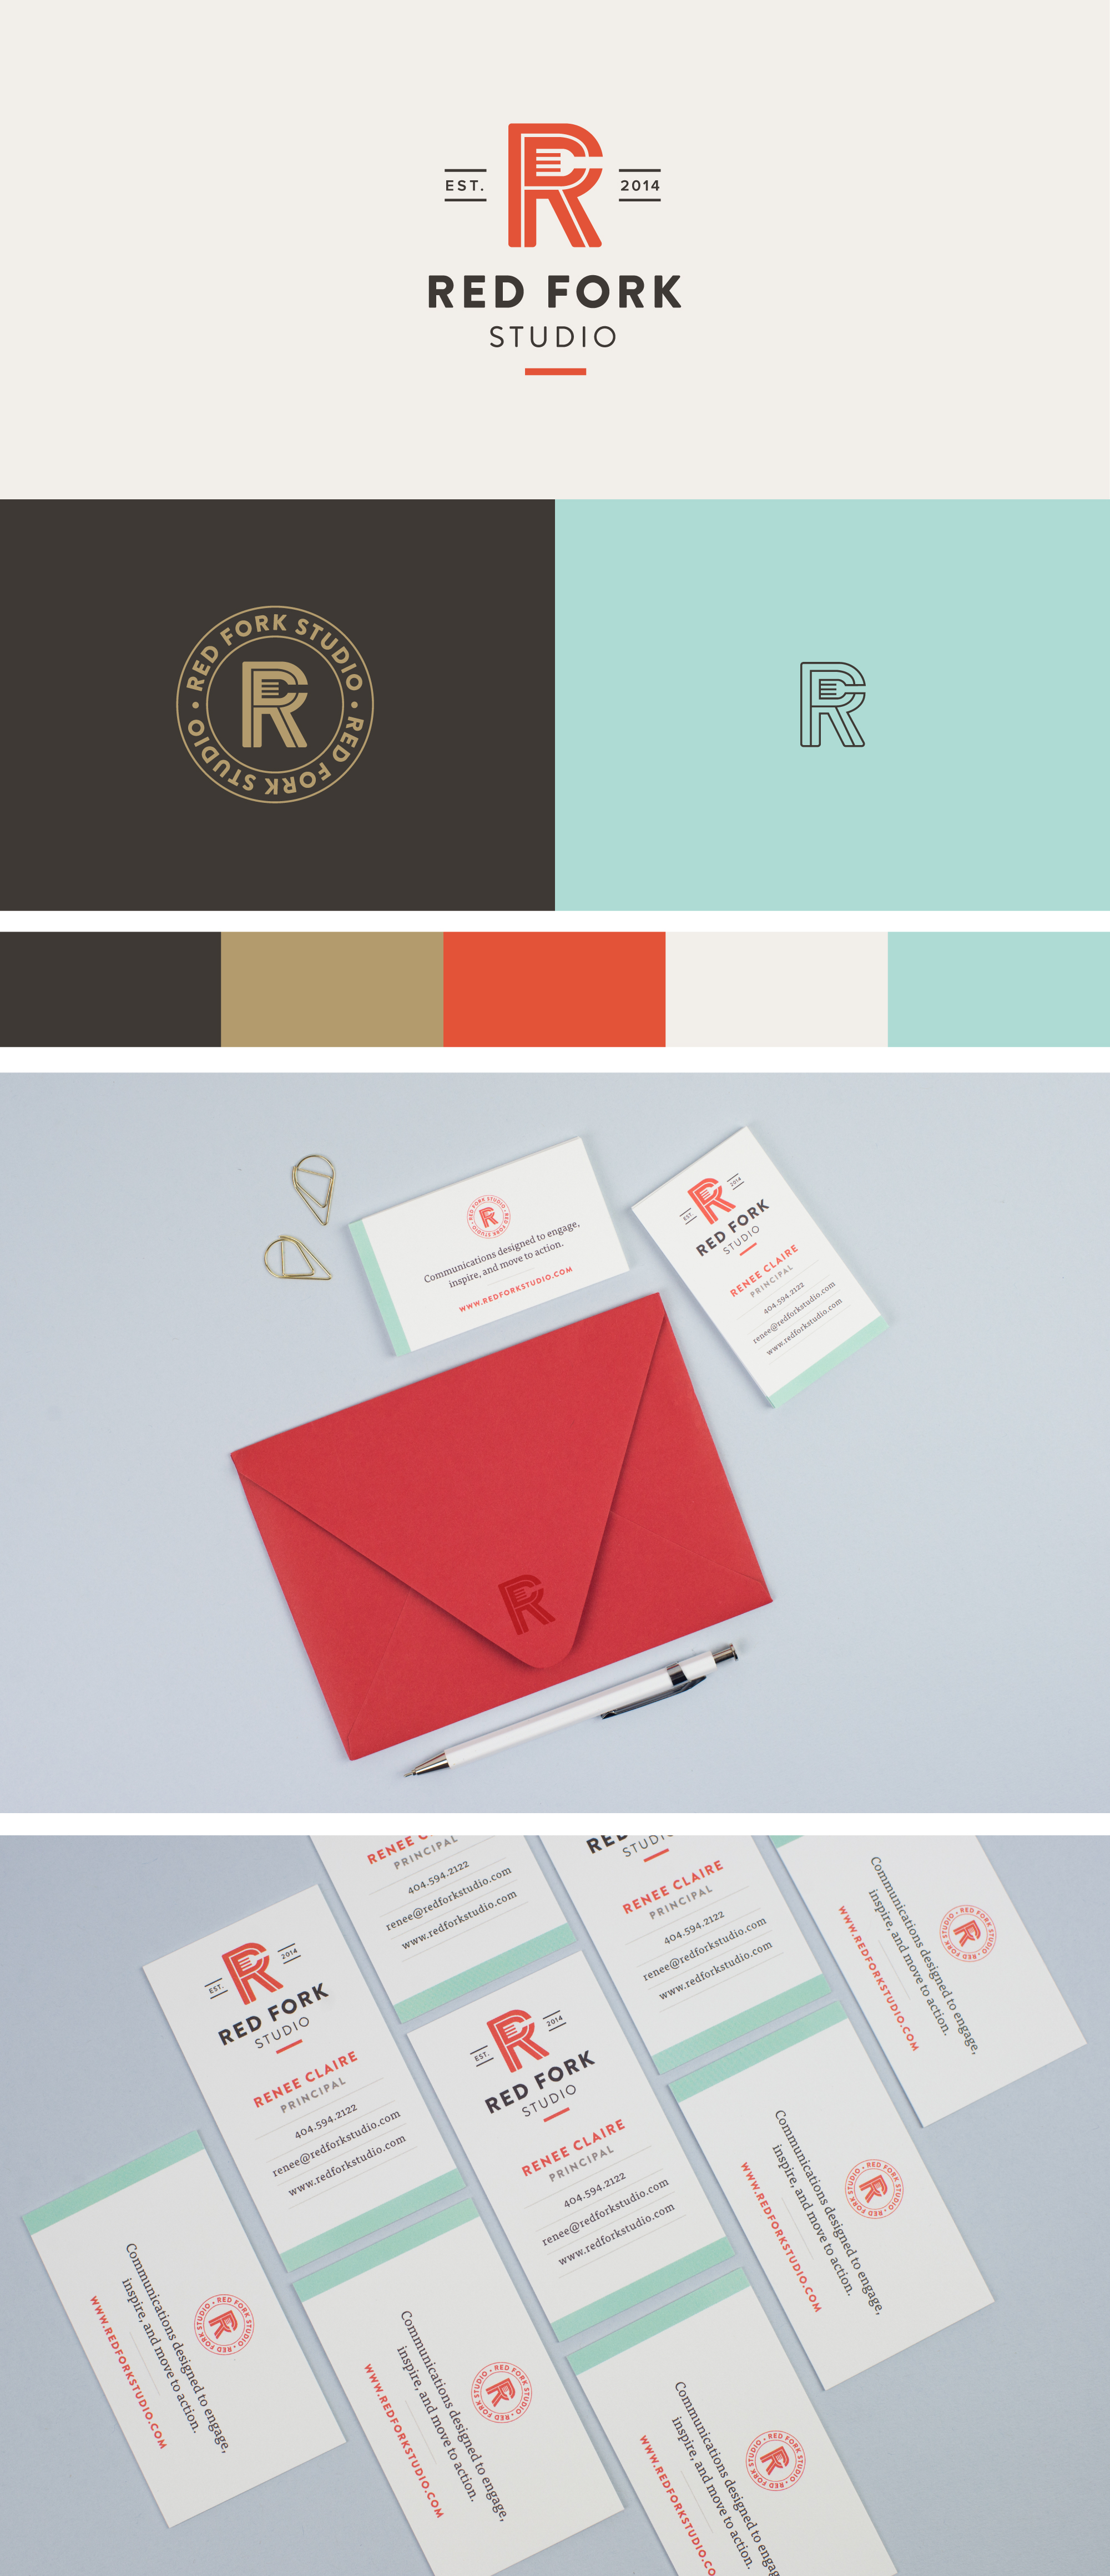 Red Fork Studio brand identity | Spruce Rd. | logo design, pattern design, online marketing, branding, monogram